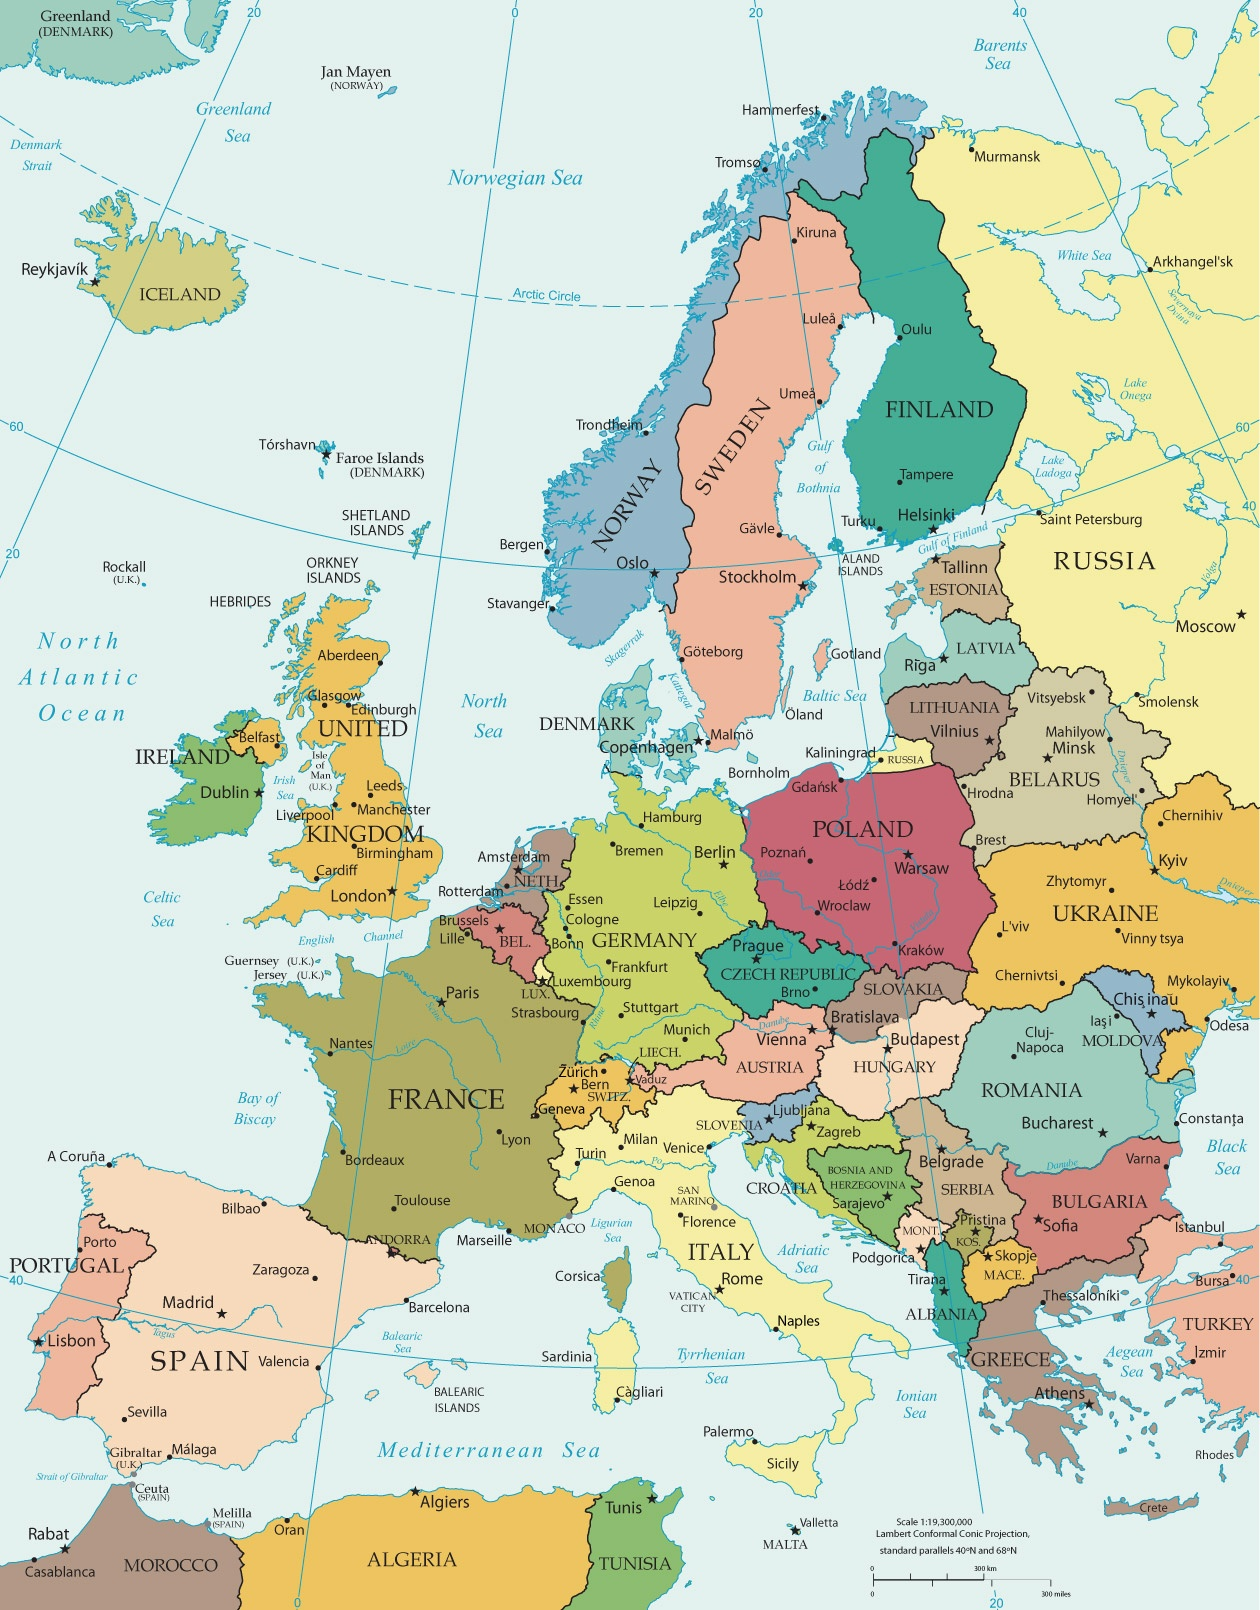 Political Map Of Europe - Countries - Free Printable Map Of Europe With Cities